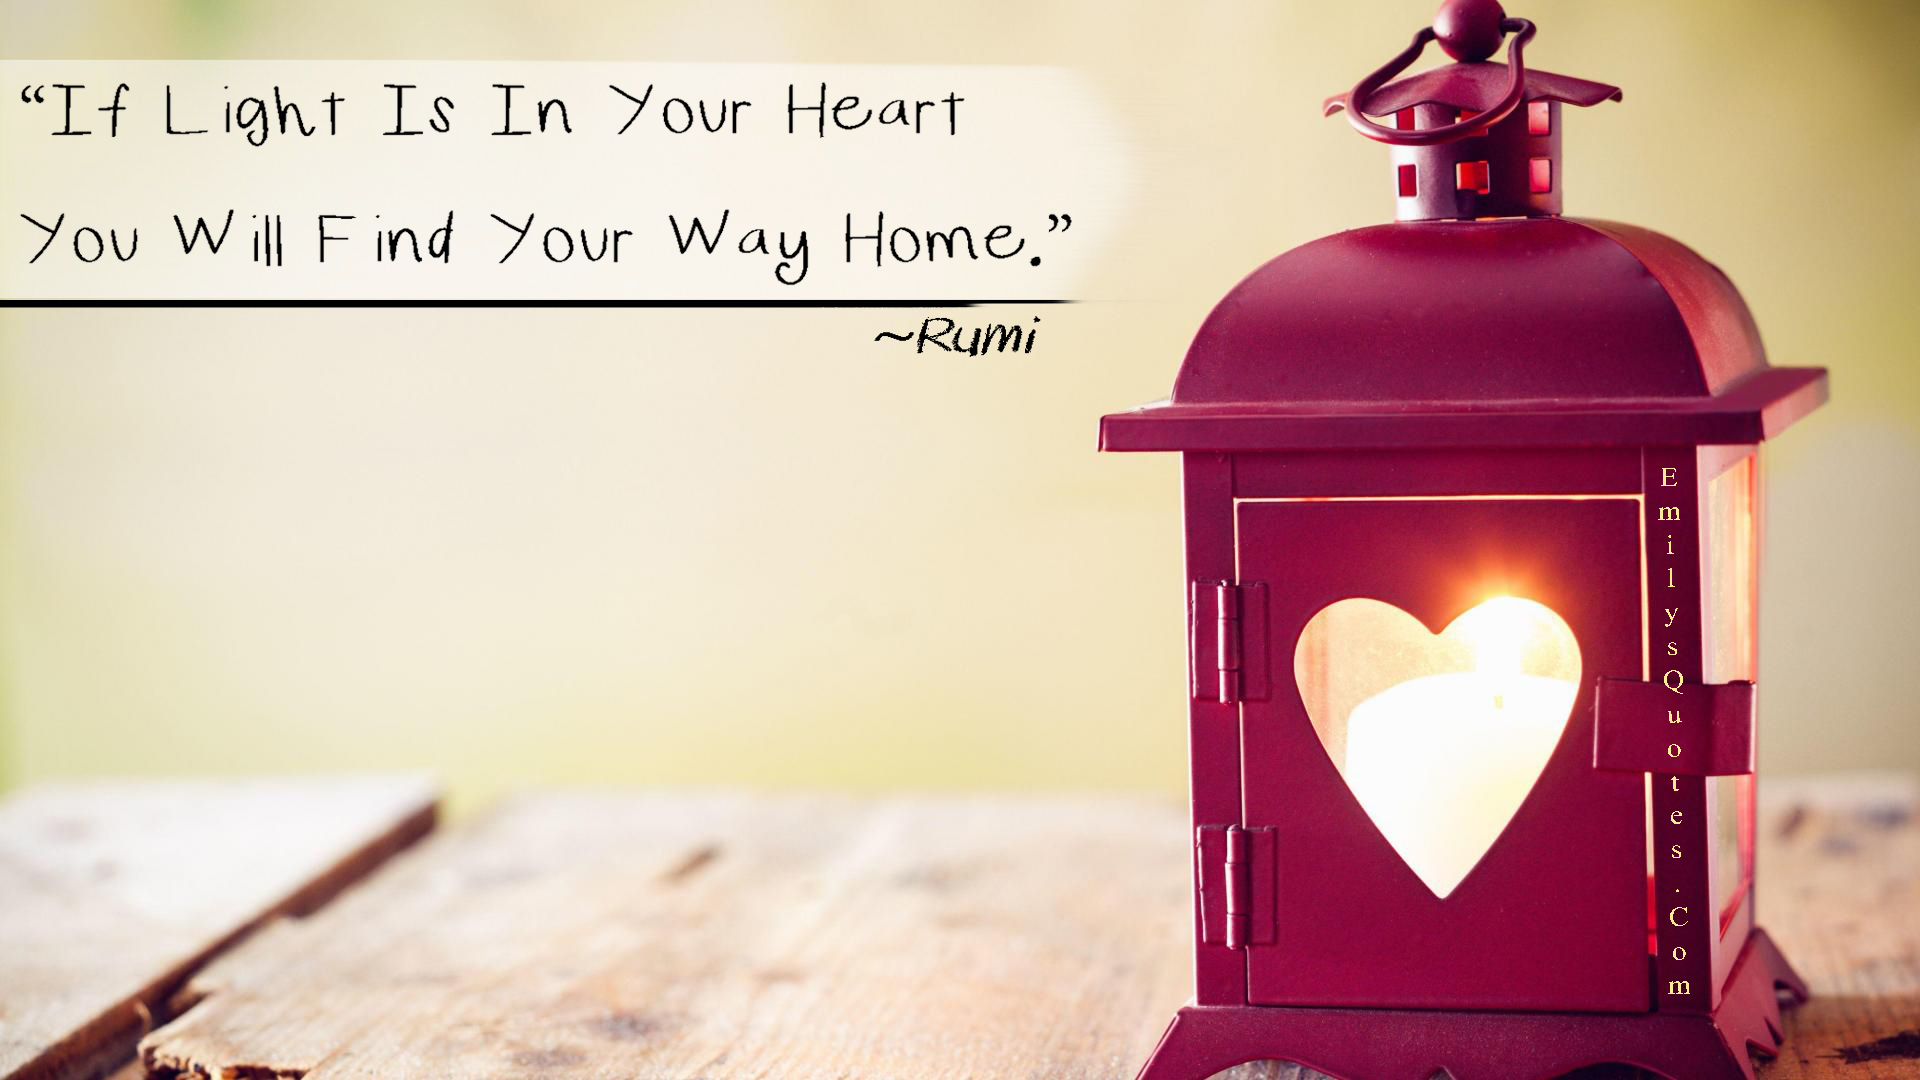 EmilysQuotes.Com - amazing, great, inspirational, being a good person, wisdom, Rumi